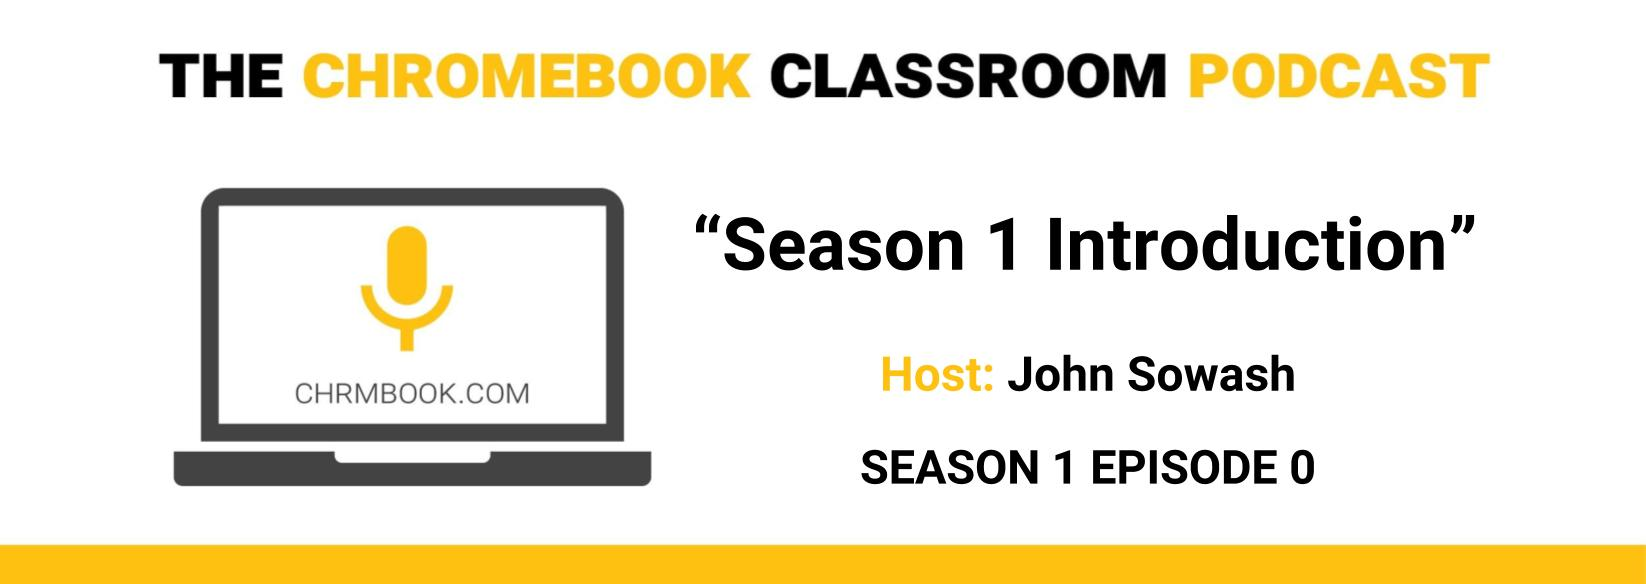 The Chromebook Classroom Podcast- Season 1 Introduction